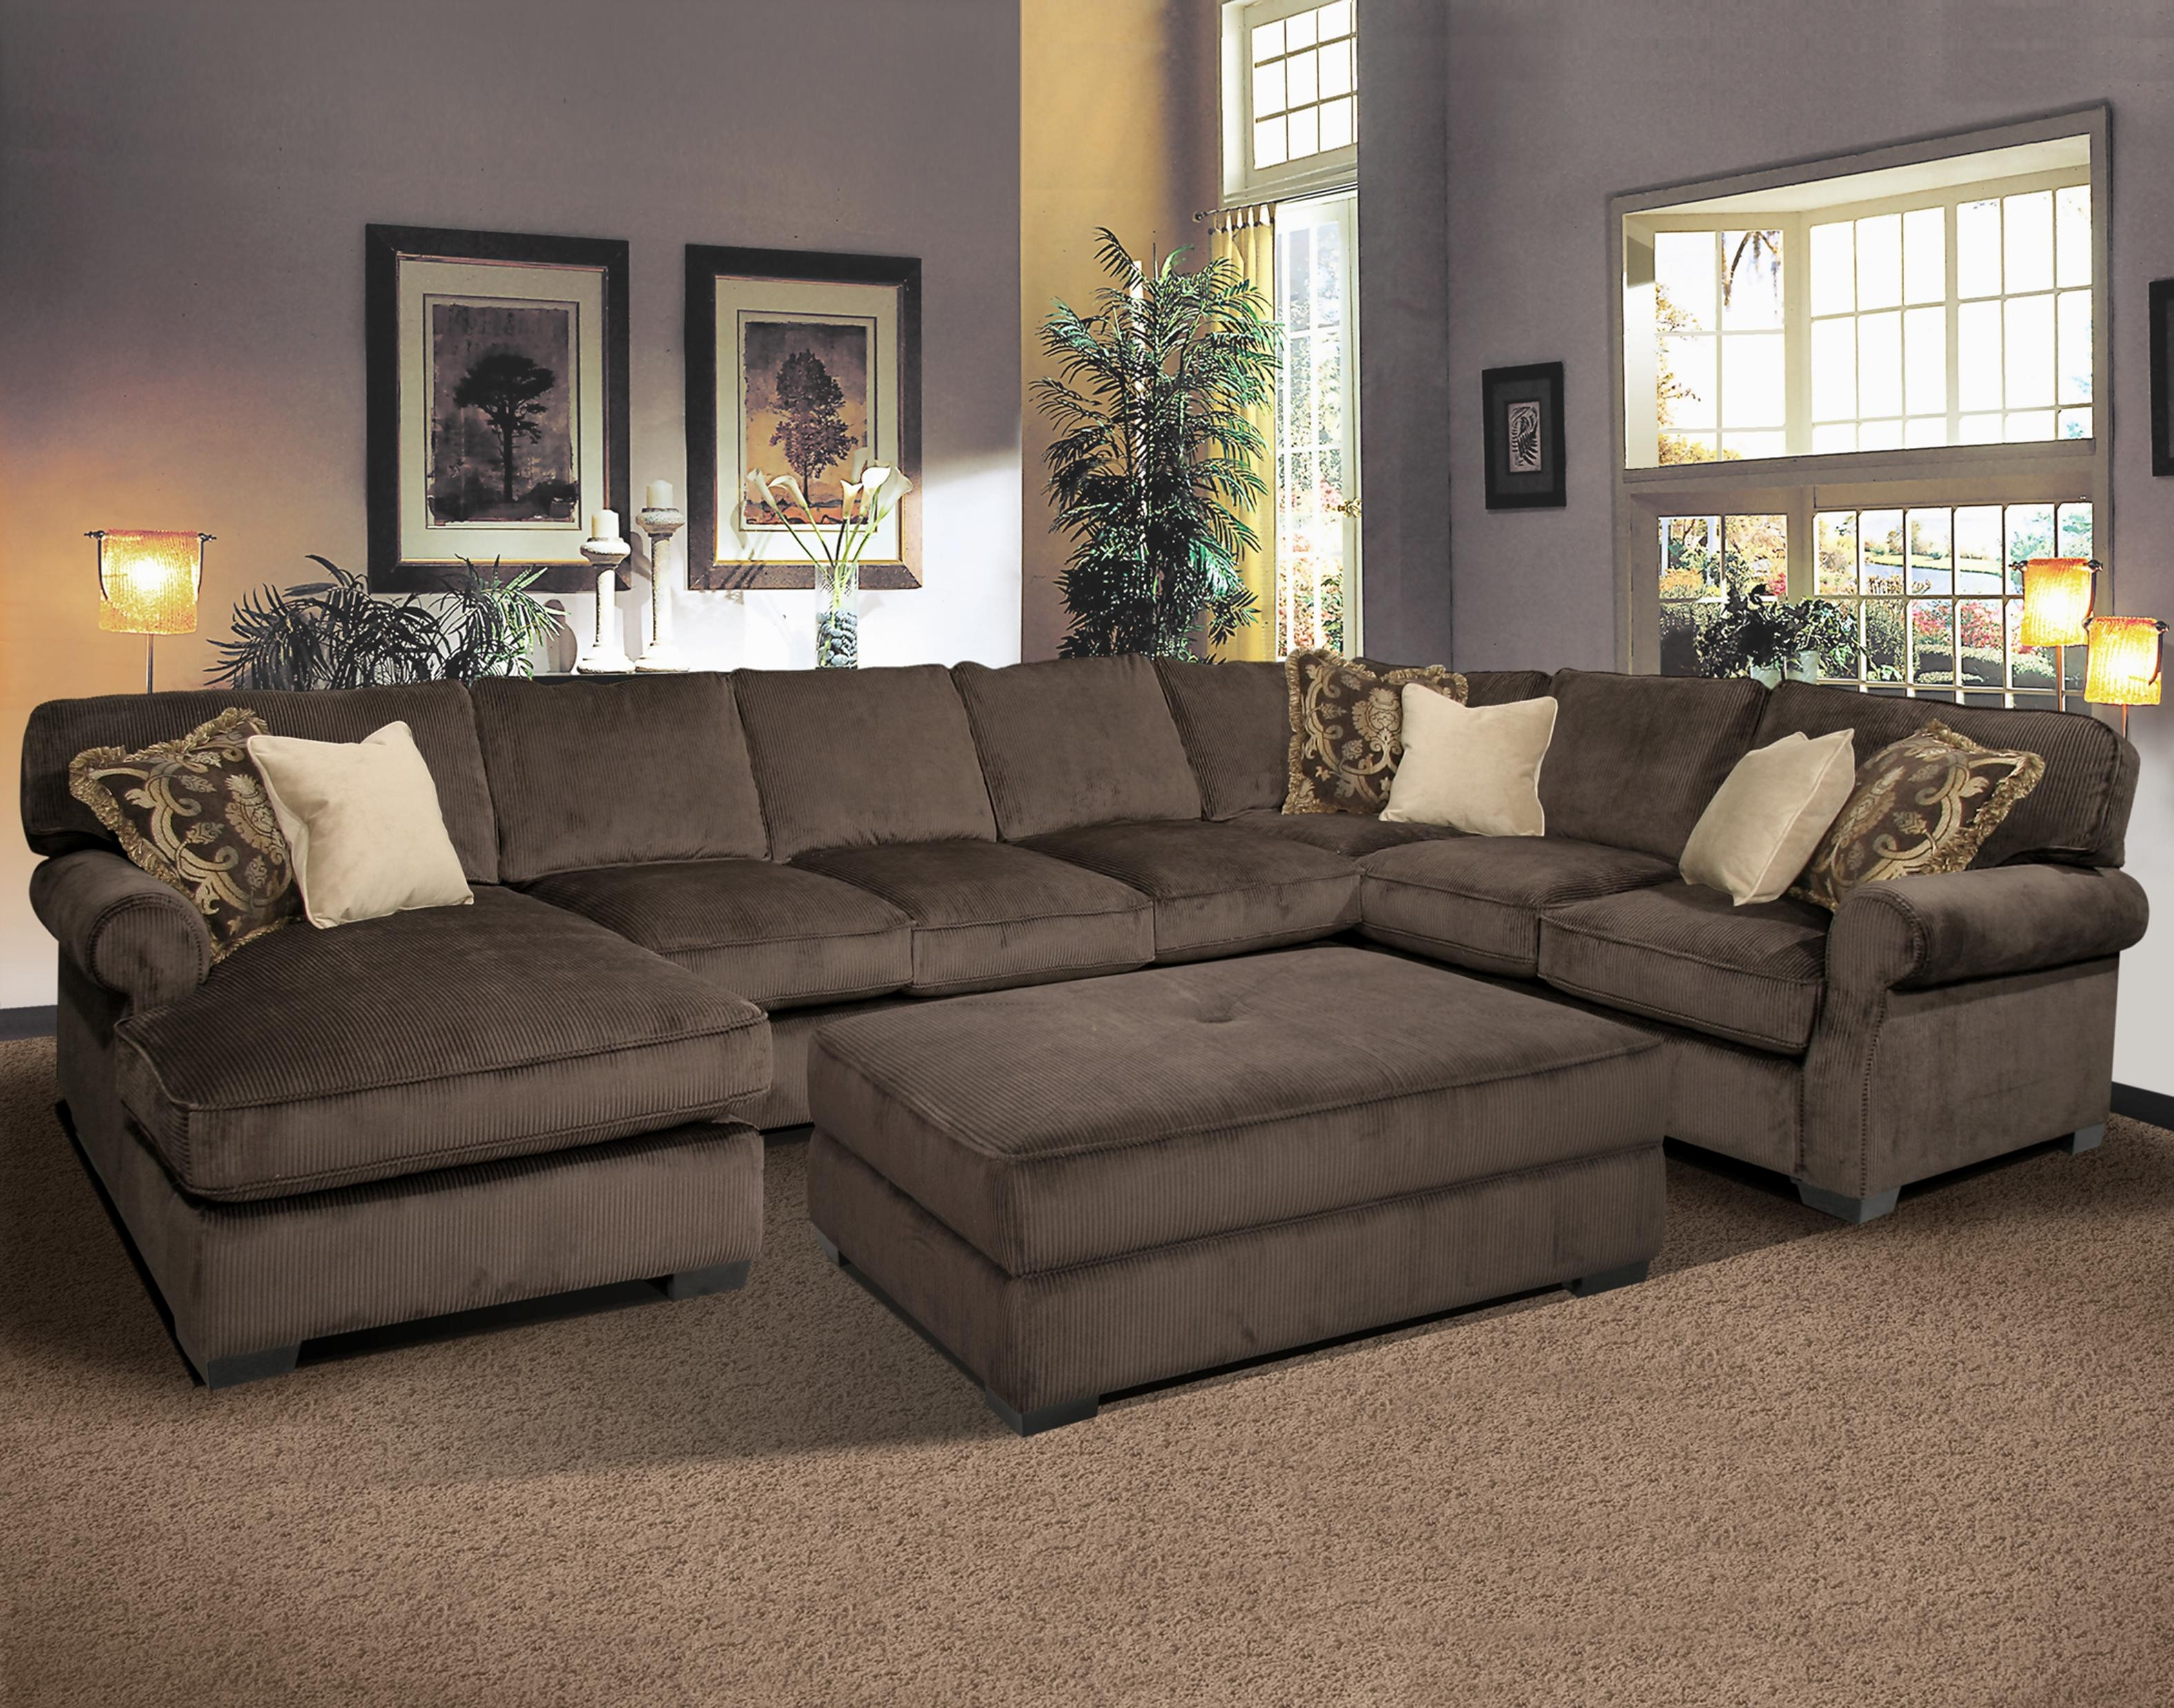 U Shaped Sectional sofa Excellent sofa Mediterranean Style U Shaped Sectional sofa with Recliners Pattern